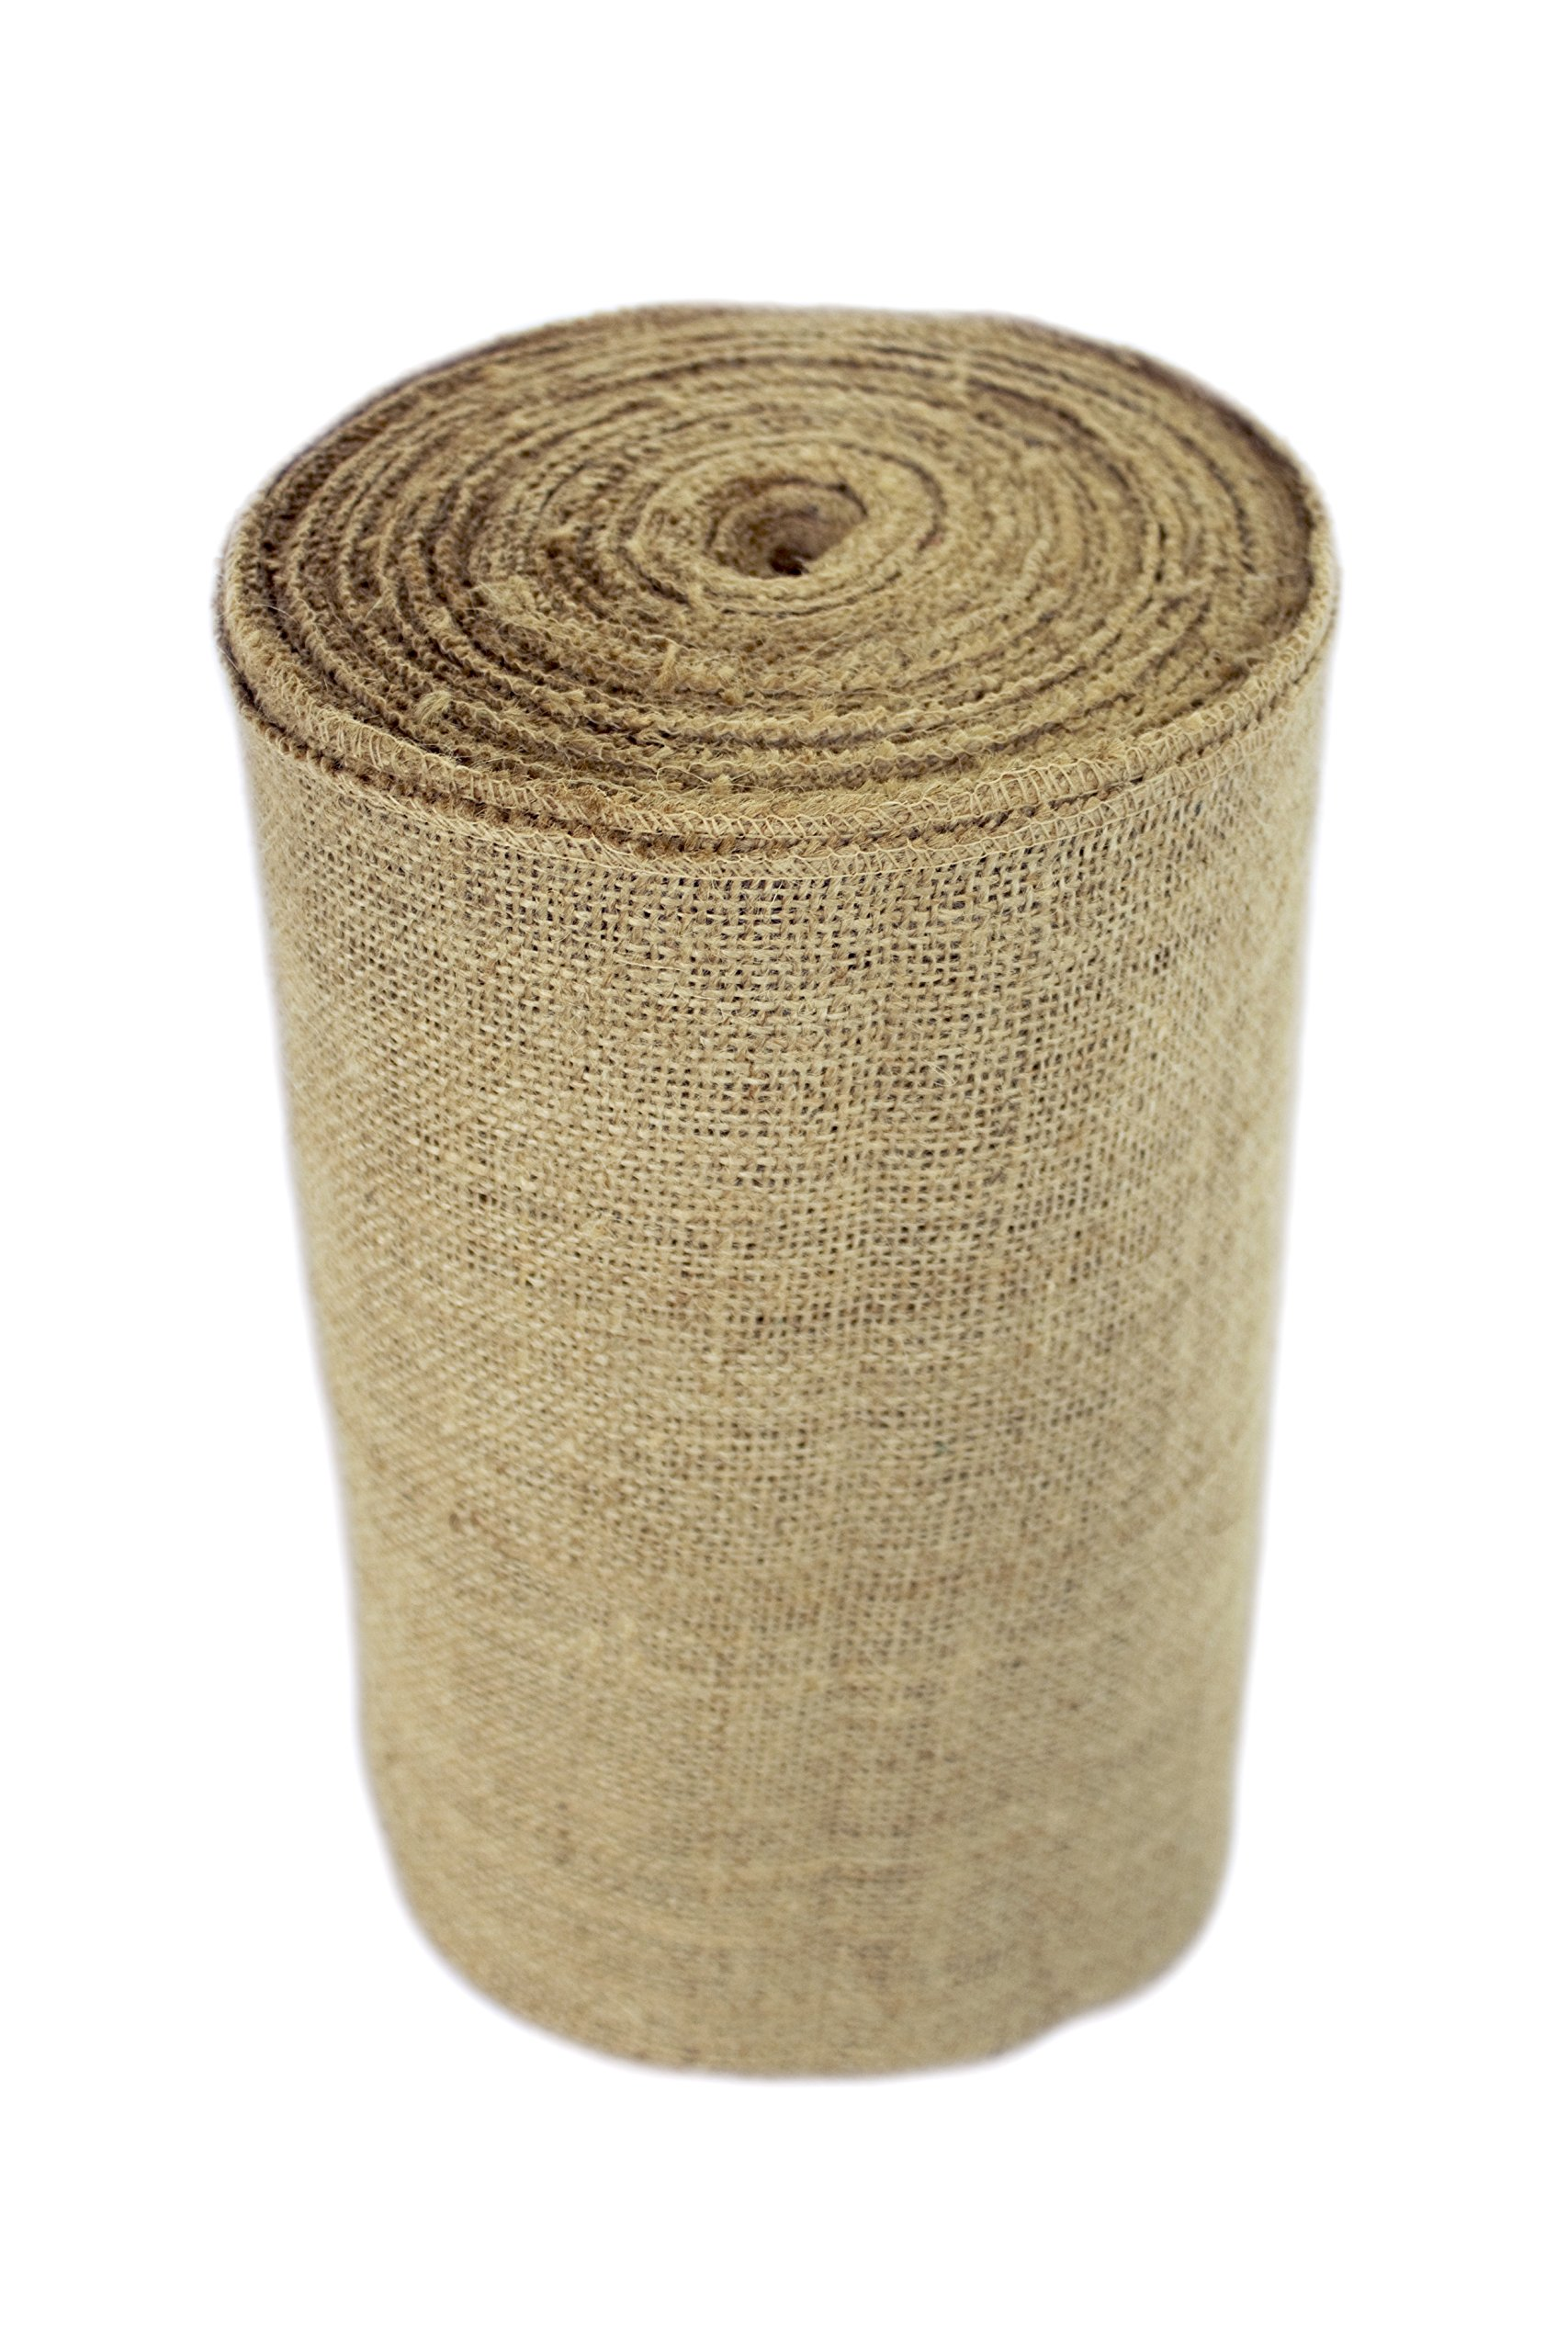 14'' No-Fray Burlap Roll Table Runner, 14 inches by 50 Yards, Placemat, Craft Fabric by Burlap and Beyond LLC (Image #2)